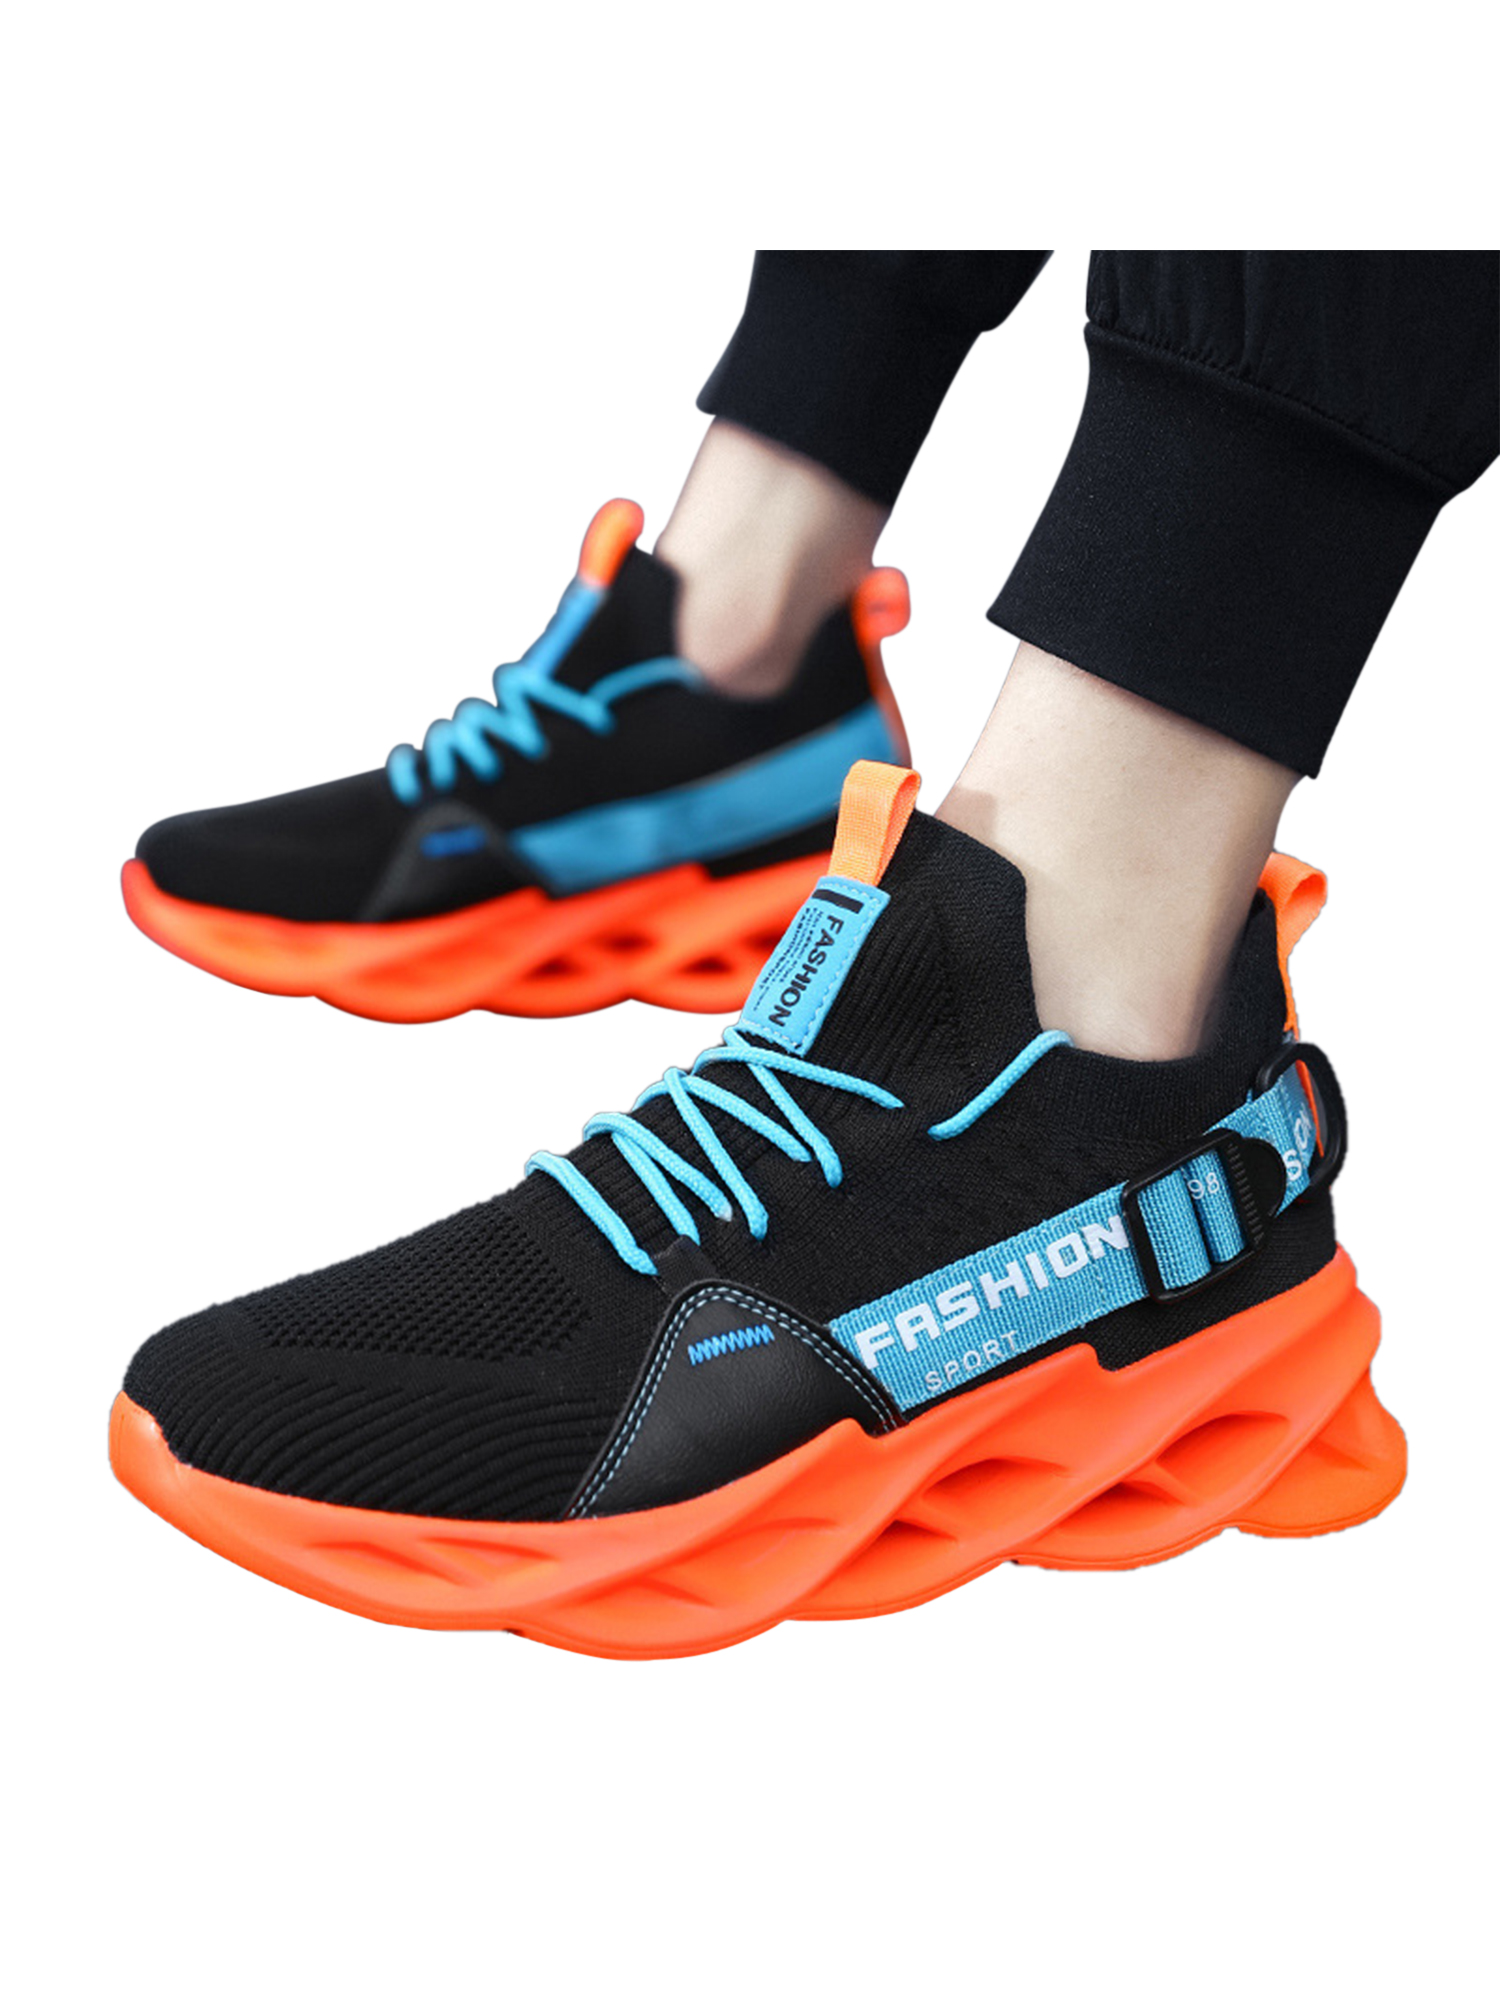 Mens Womens Sports Shoes Running Trainers Athletic Fitness Gym Lace up Sneakers